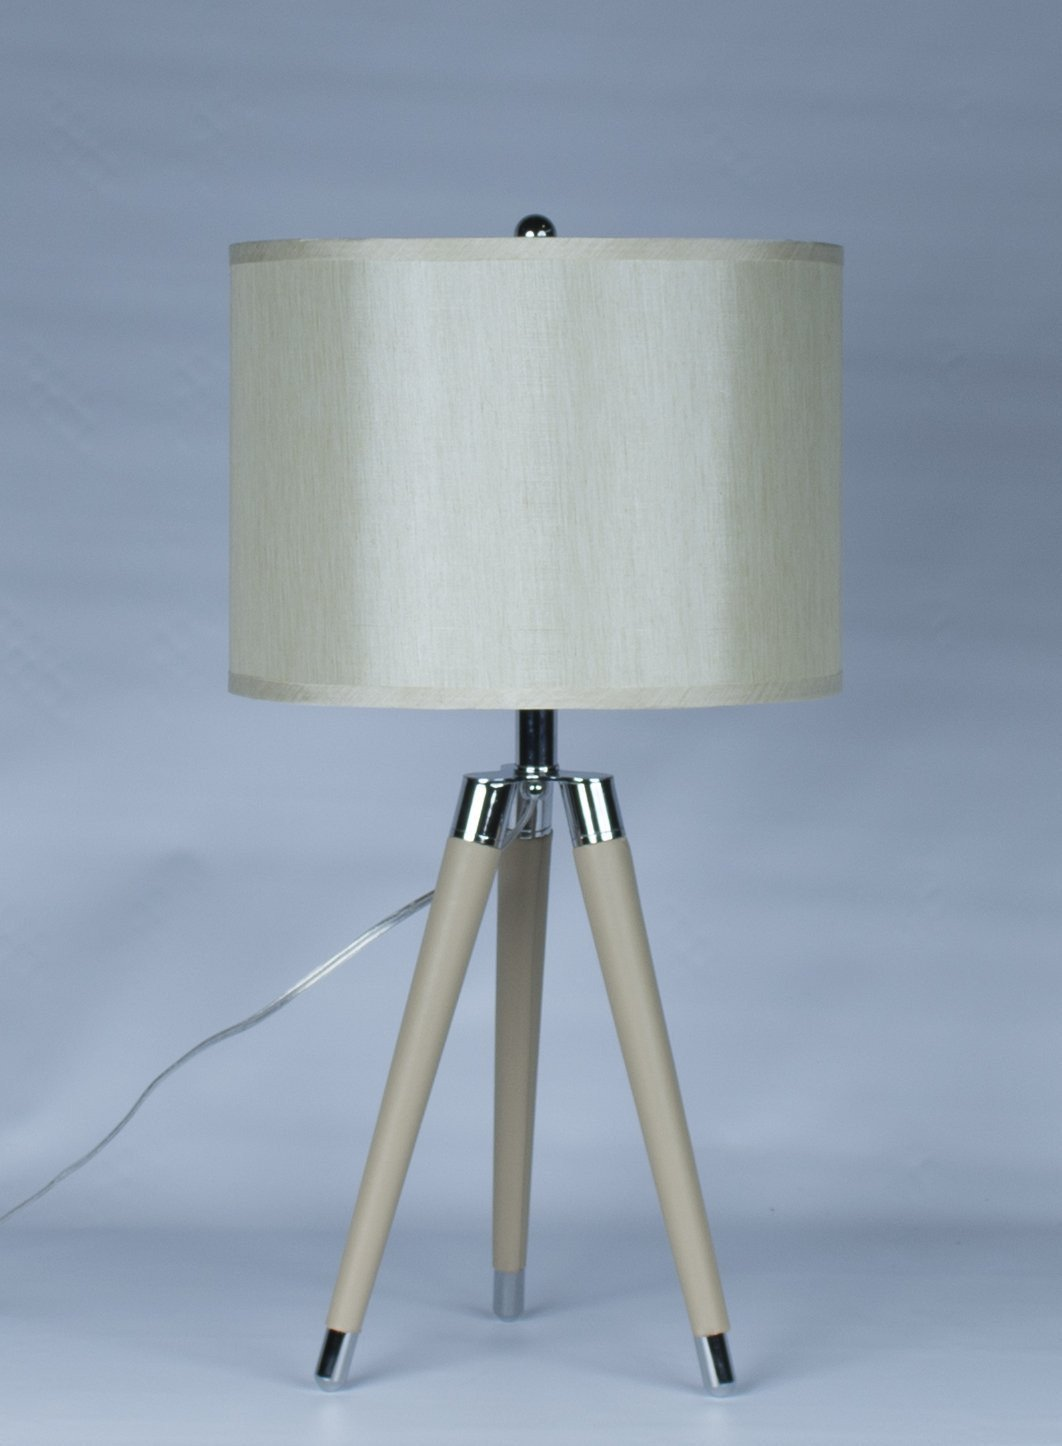 Tan Mid Century Modern Tripod Leather Chrome Table Lamp With Drum